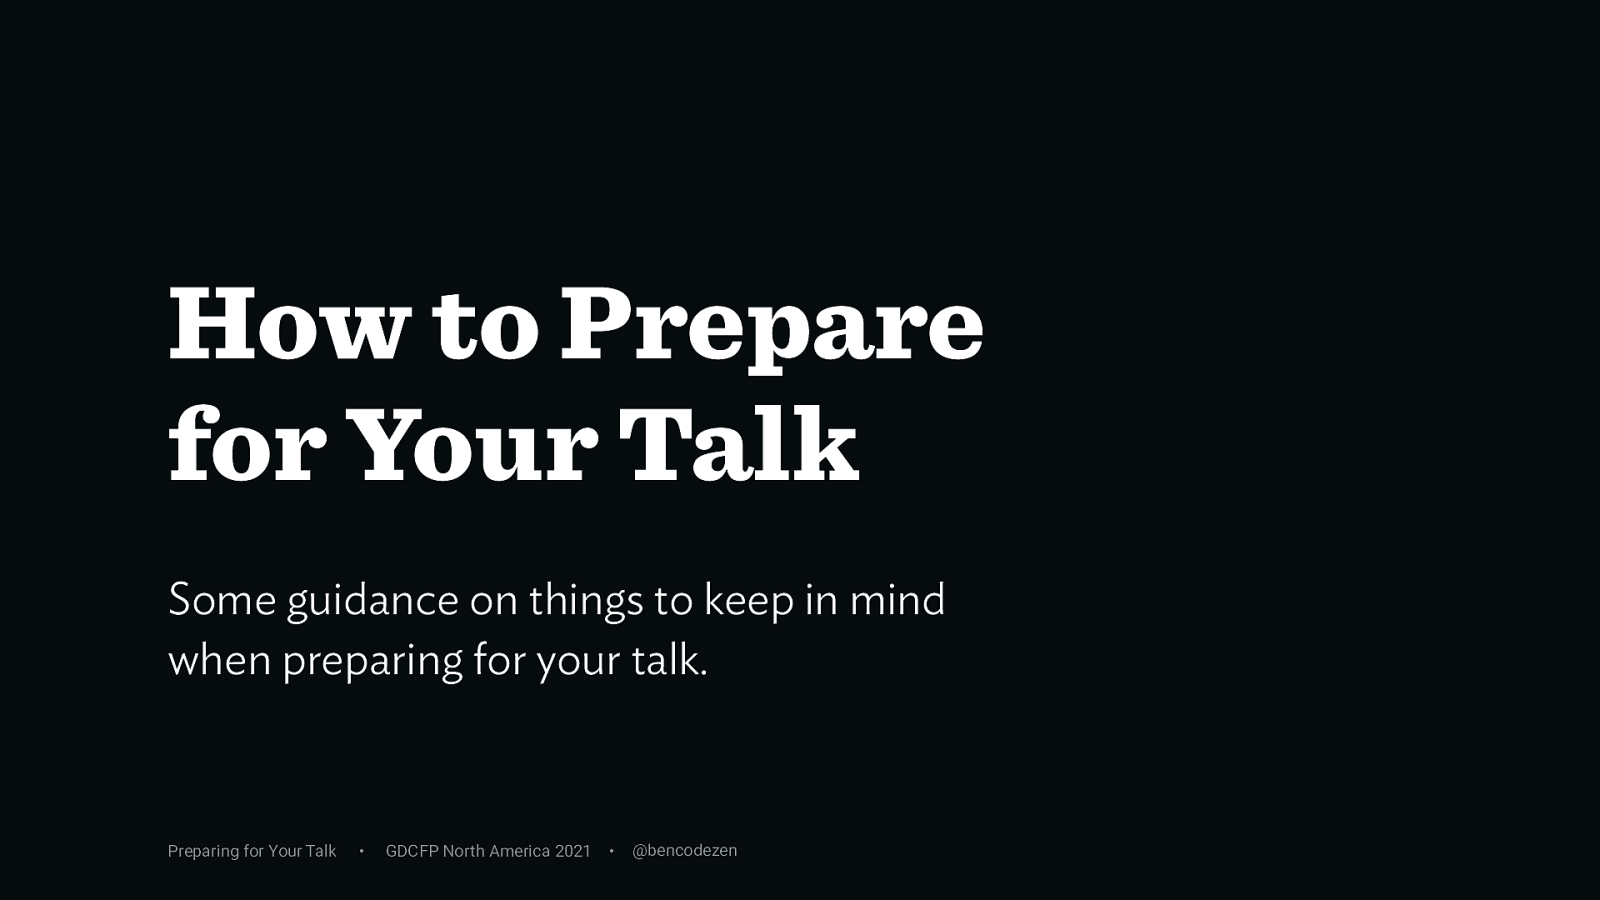 How to Prepare for Your Talk